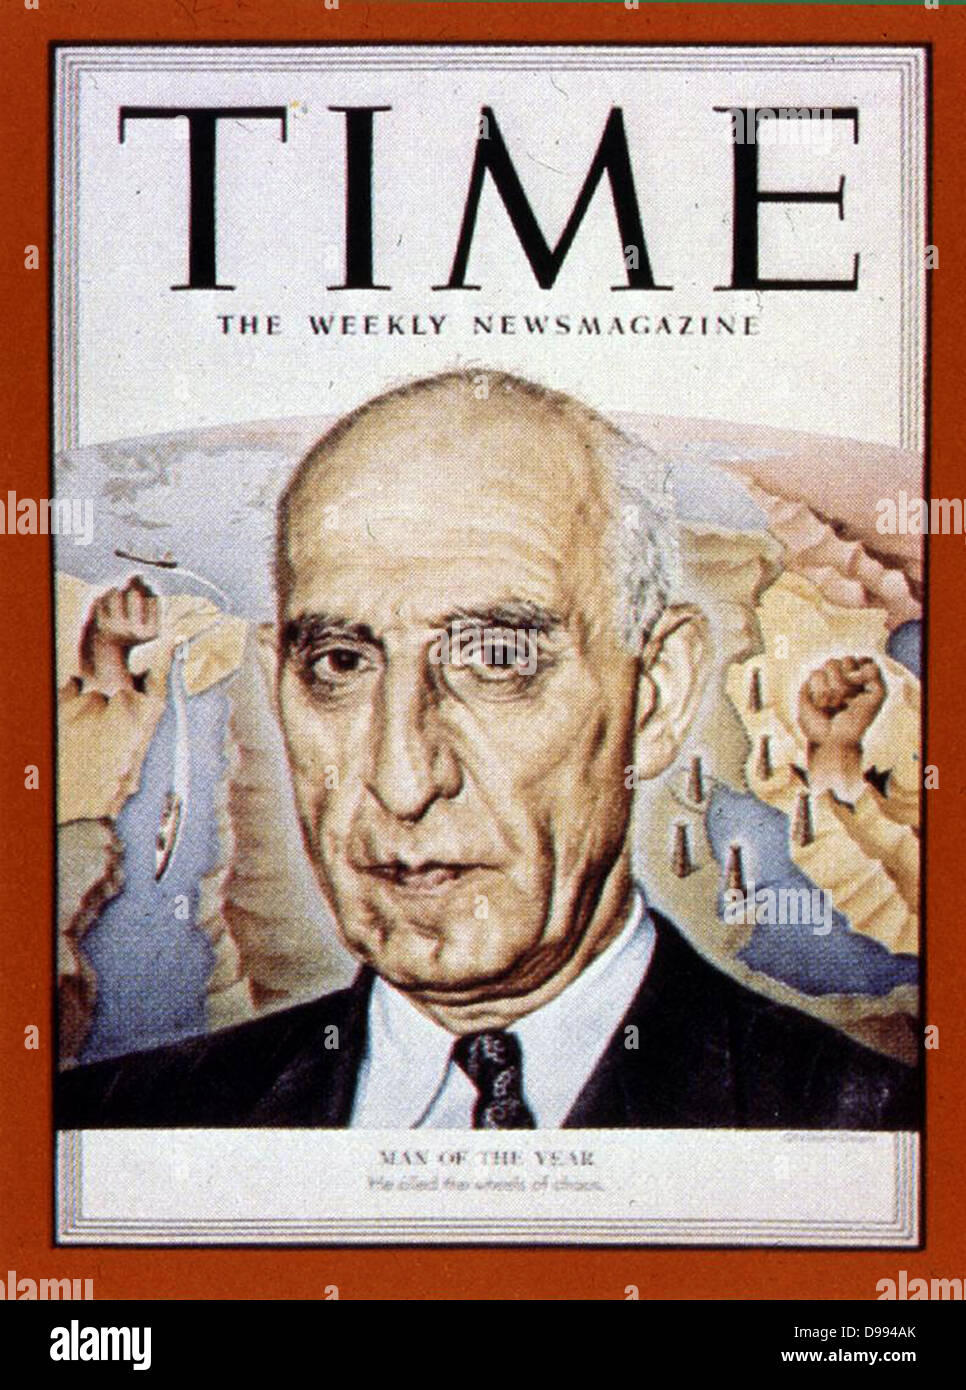 Image result for PHOTOS OF Mohammad Mosaddegh